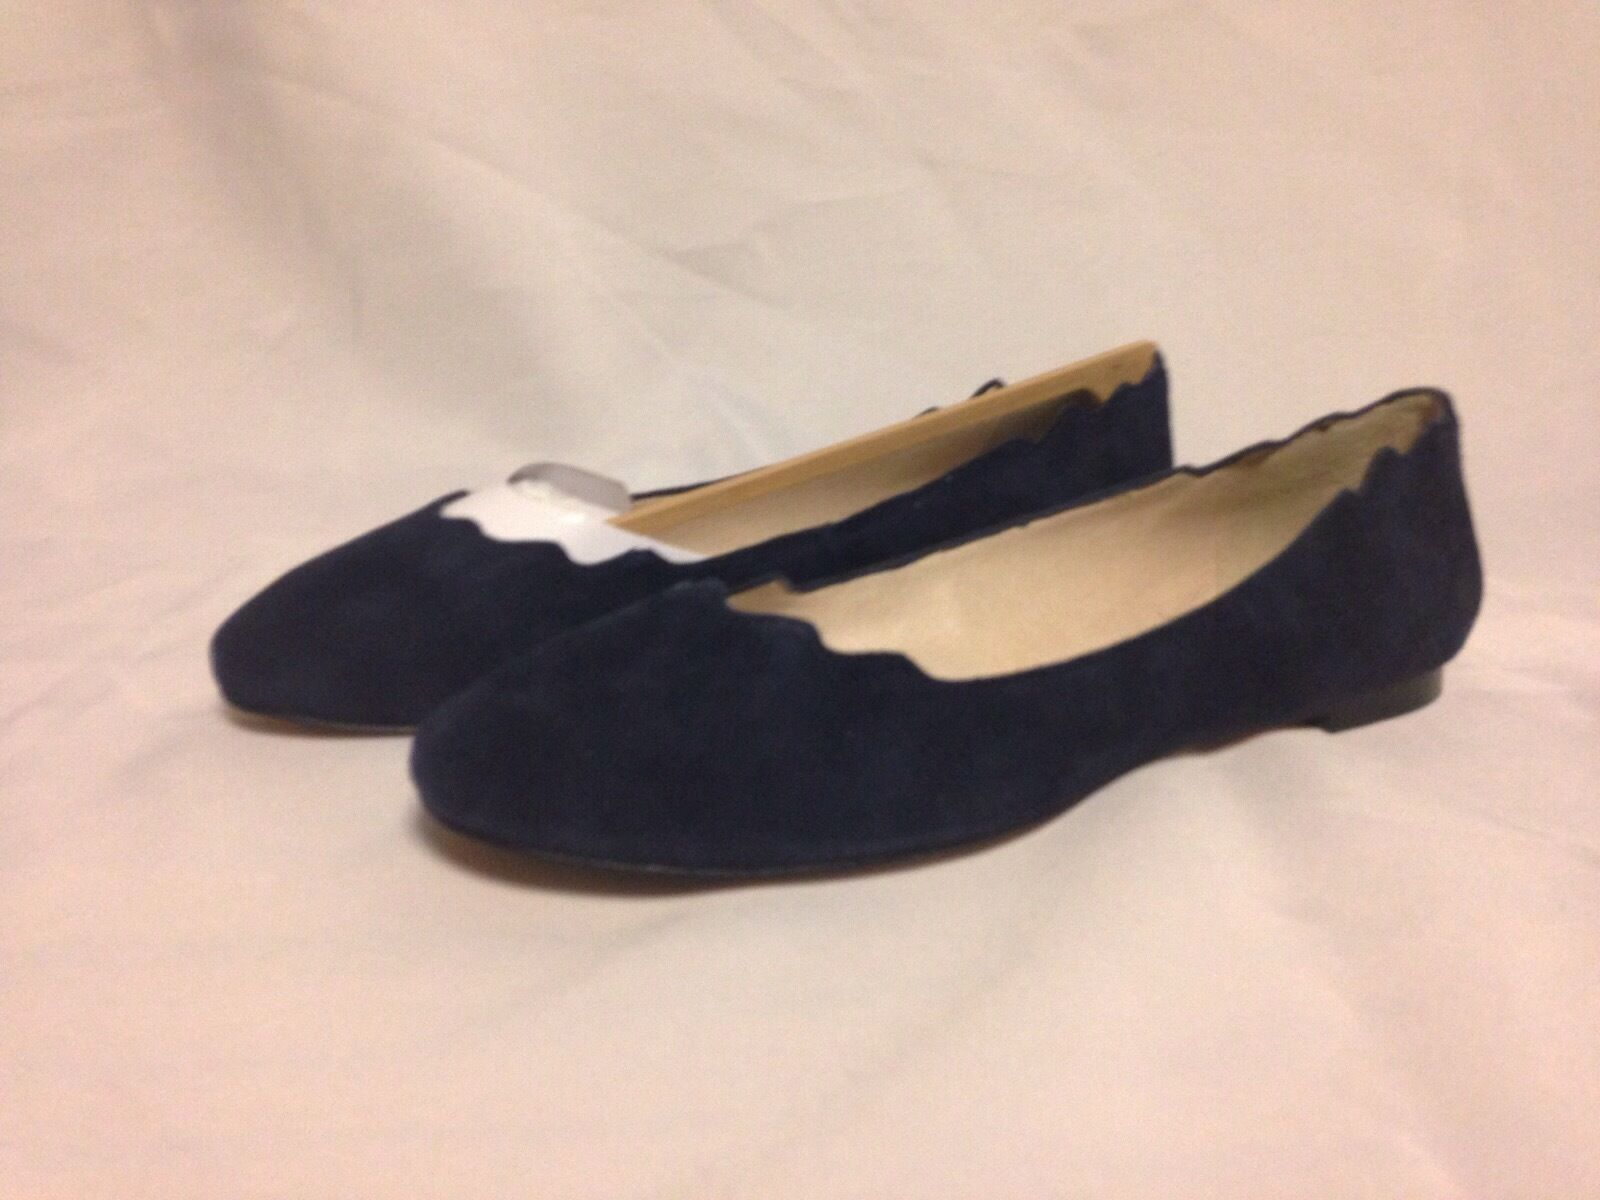 Sam Edelman Augusta Scalloped Edge Loafer 6 M Ink blu Suede New with Box